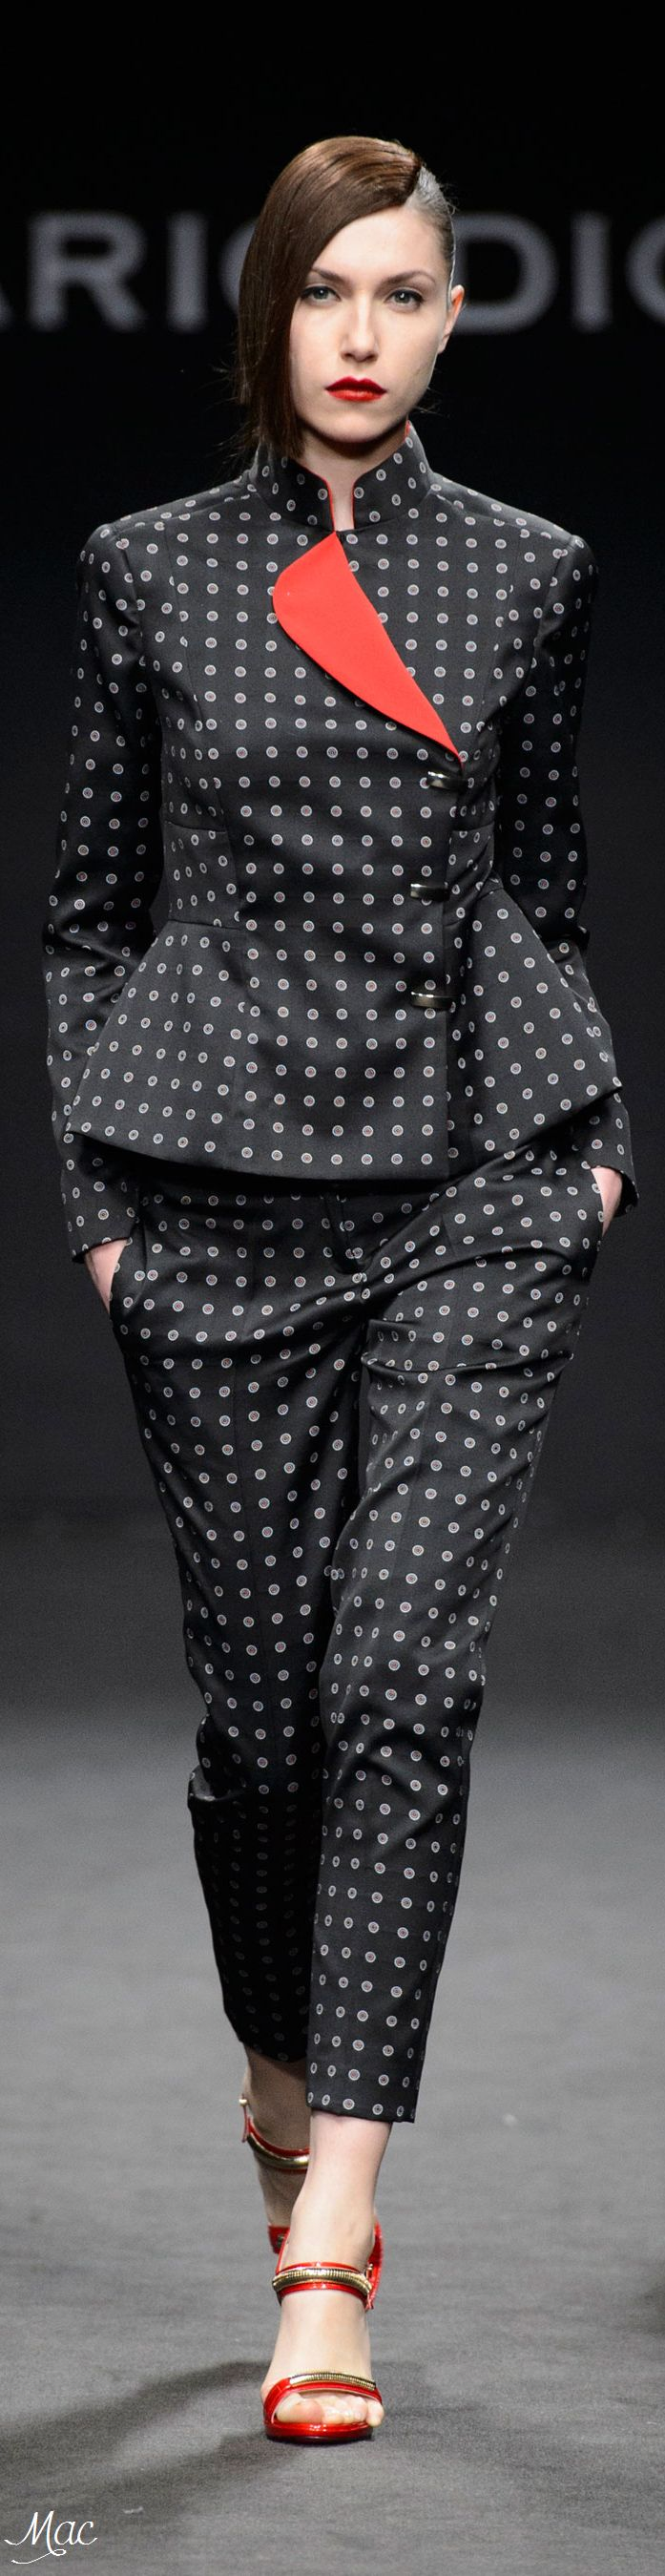 Fall 2016 Ready-to-Wear Mario Dice